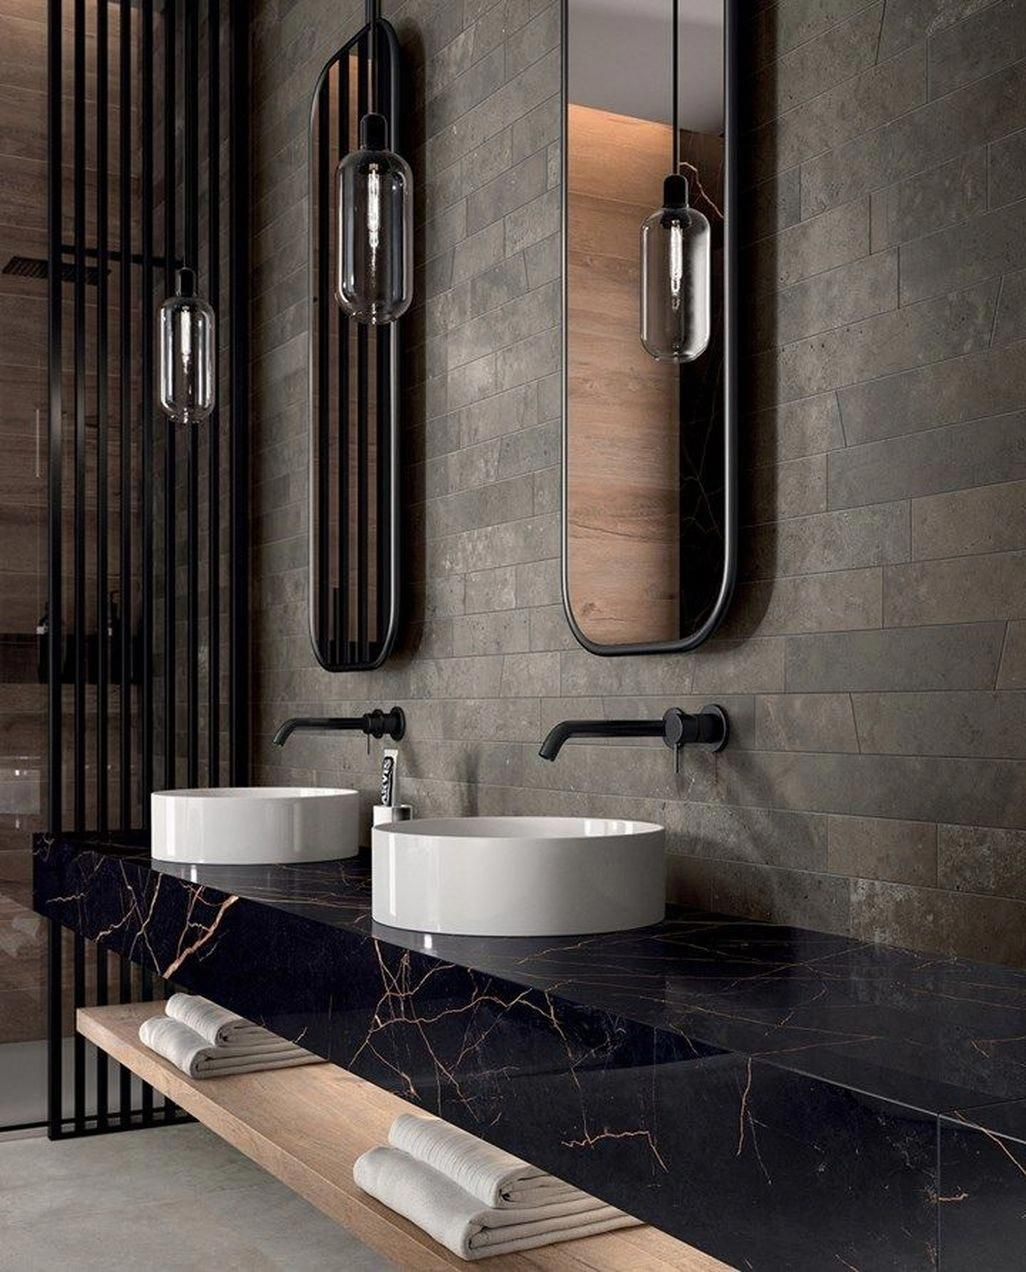 Consider This Essential Pic And Browse Through The Presented Knowledge On Beautiful Bathrooms In 2020 Top Bathroom Design Contemporary Bathroom Designs Modern Bathroom